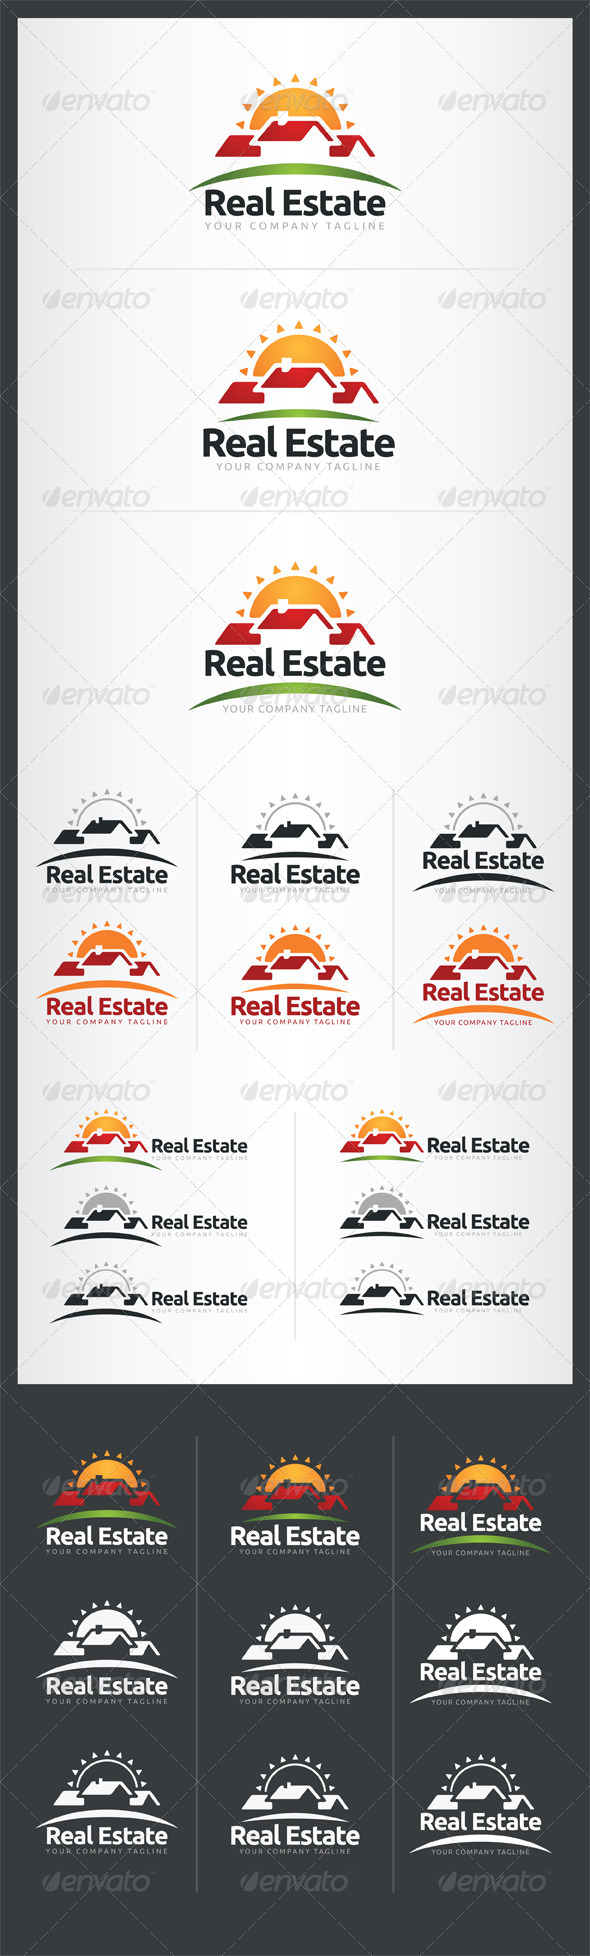 GraphicRiver Real Estate Logo Template 6696998